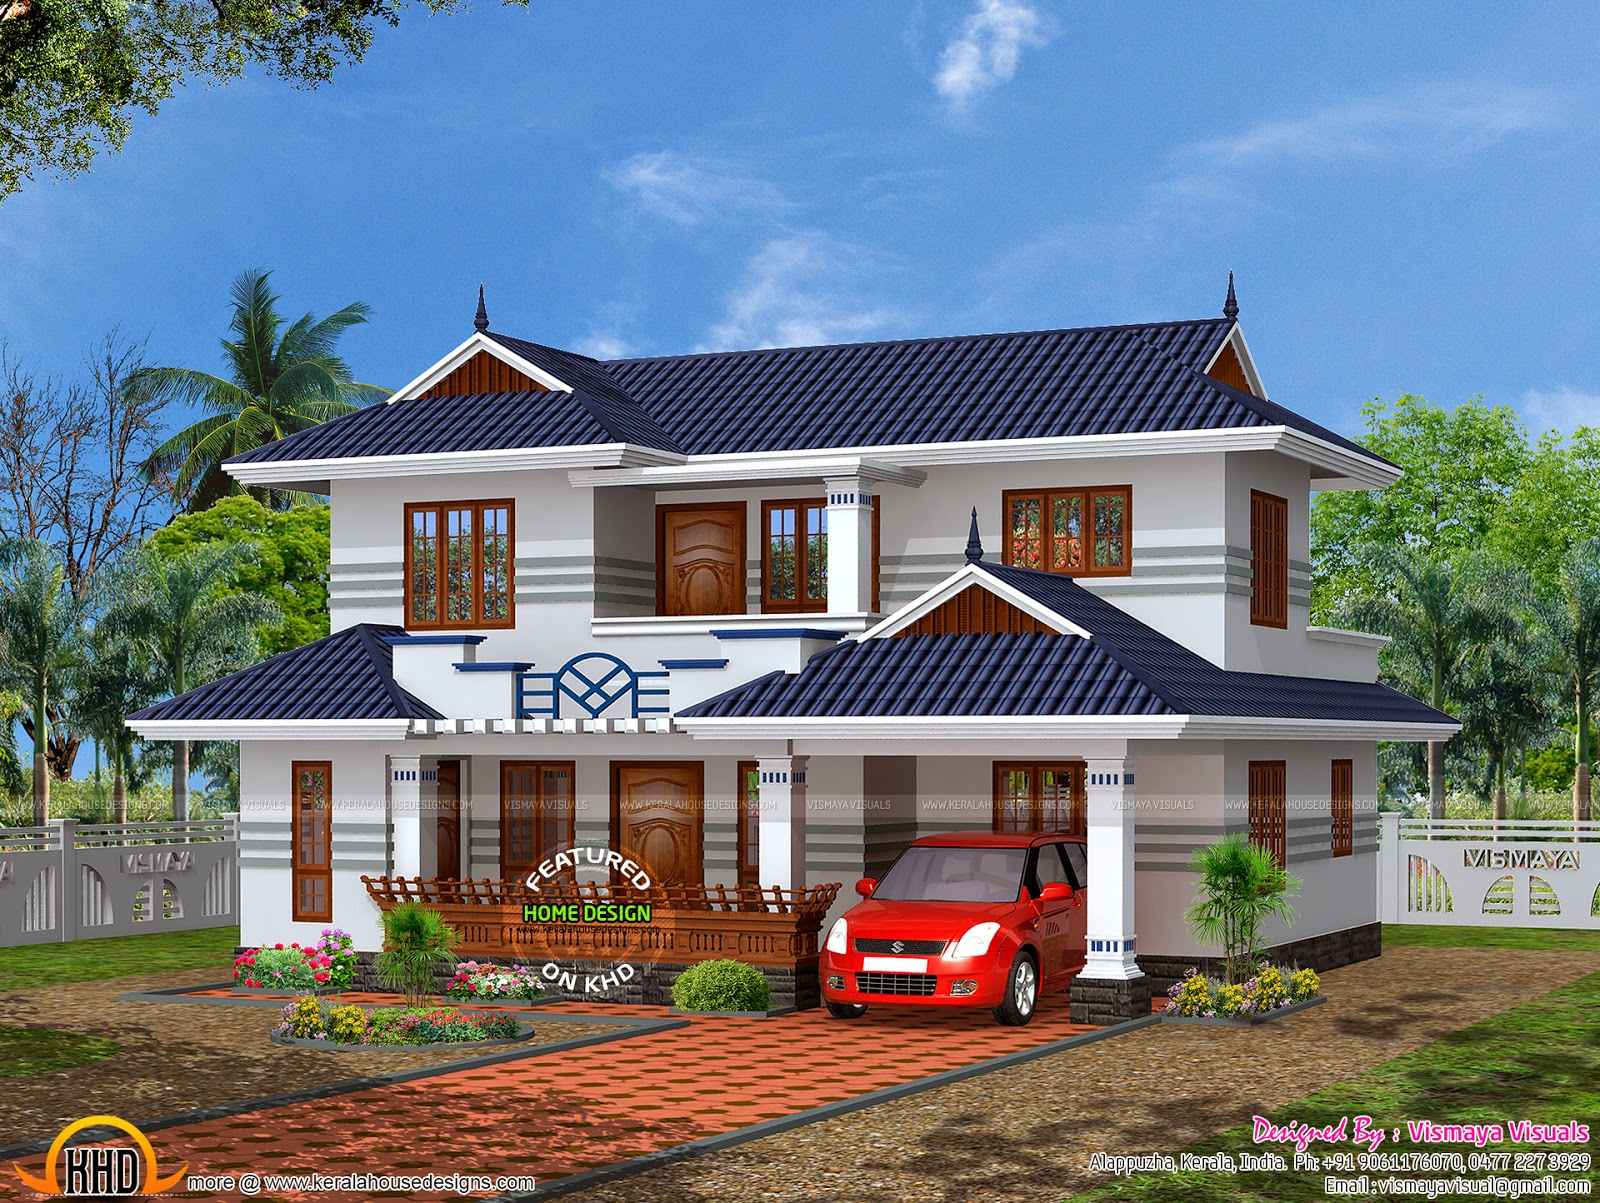 Typical kerala house plan kerala home design and floor plans for Kerala house photos